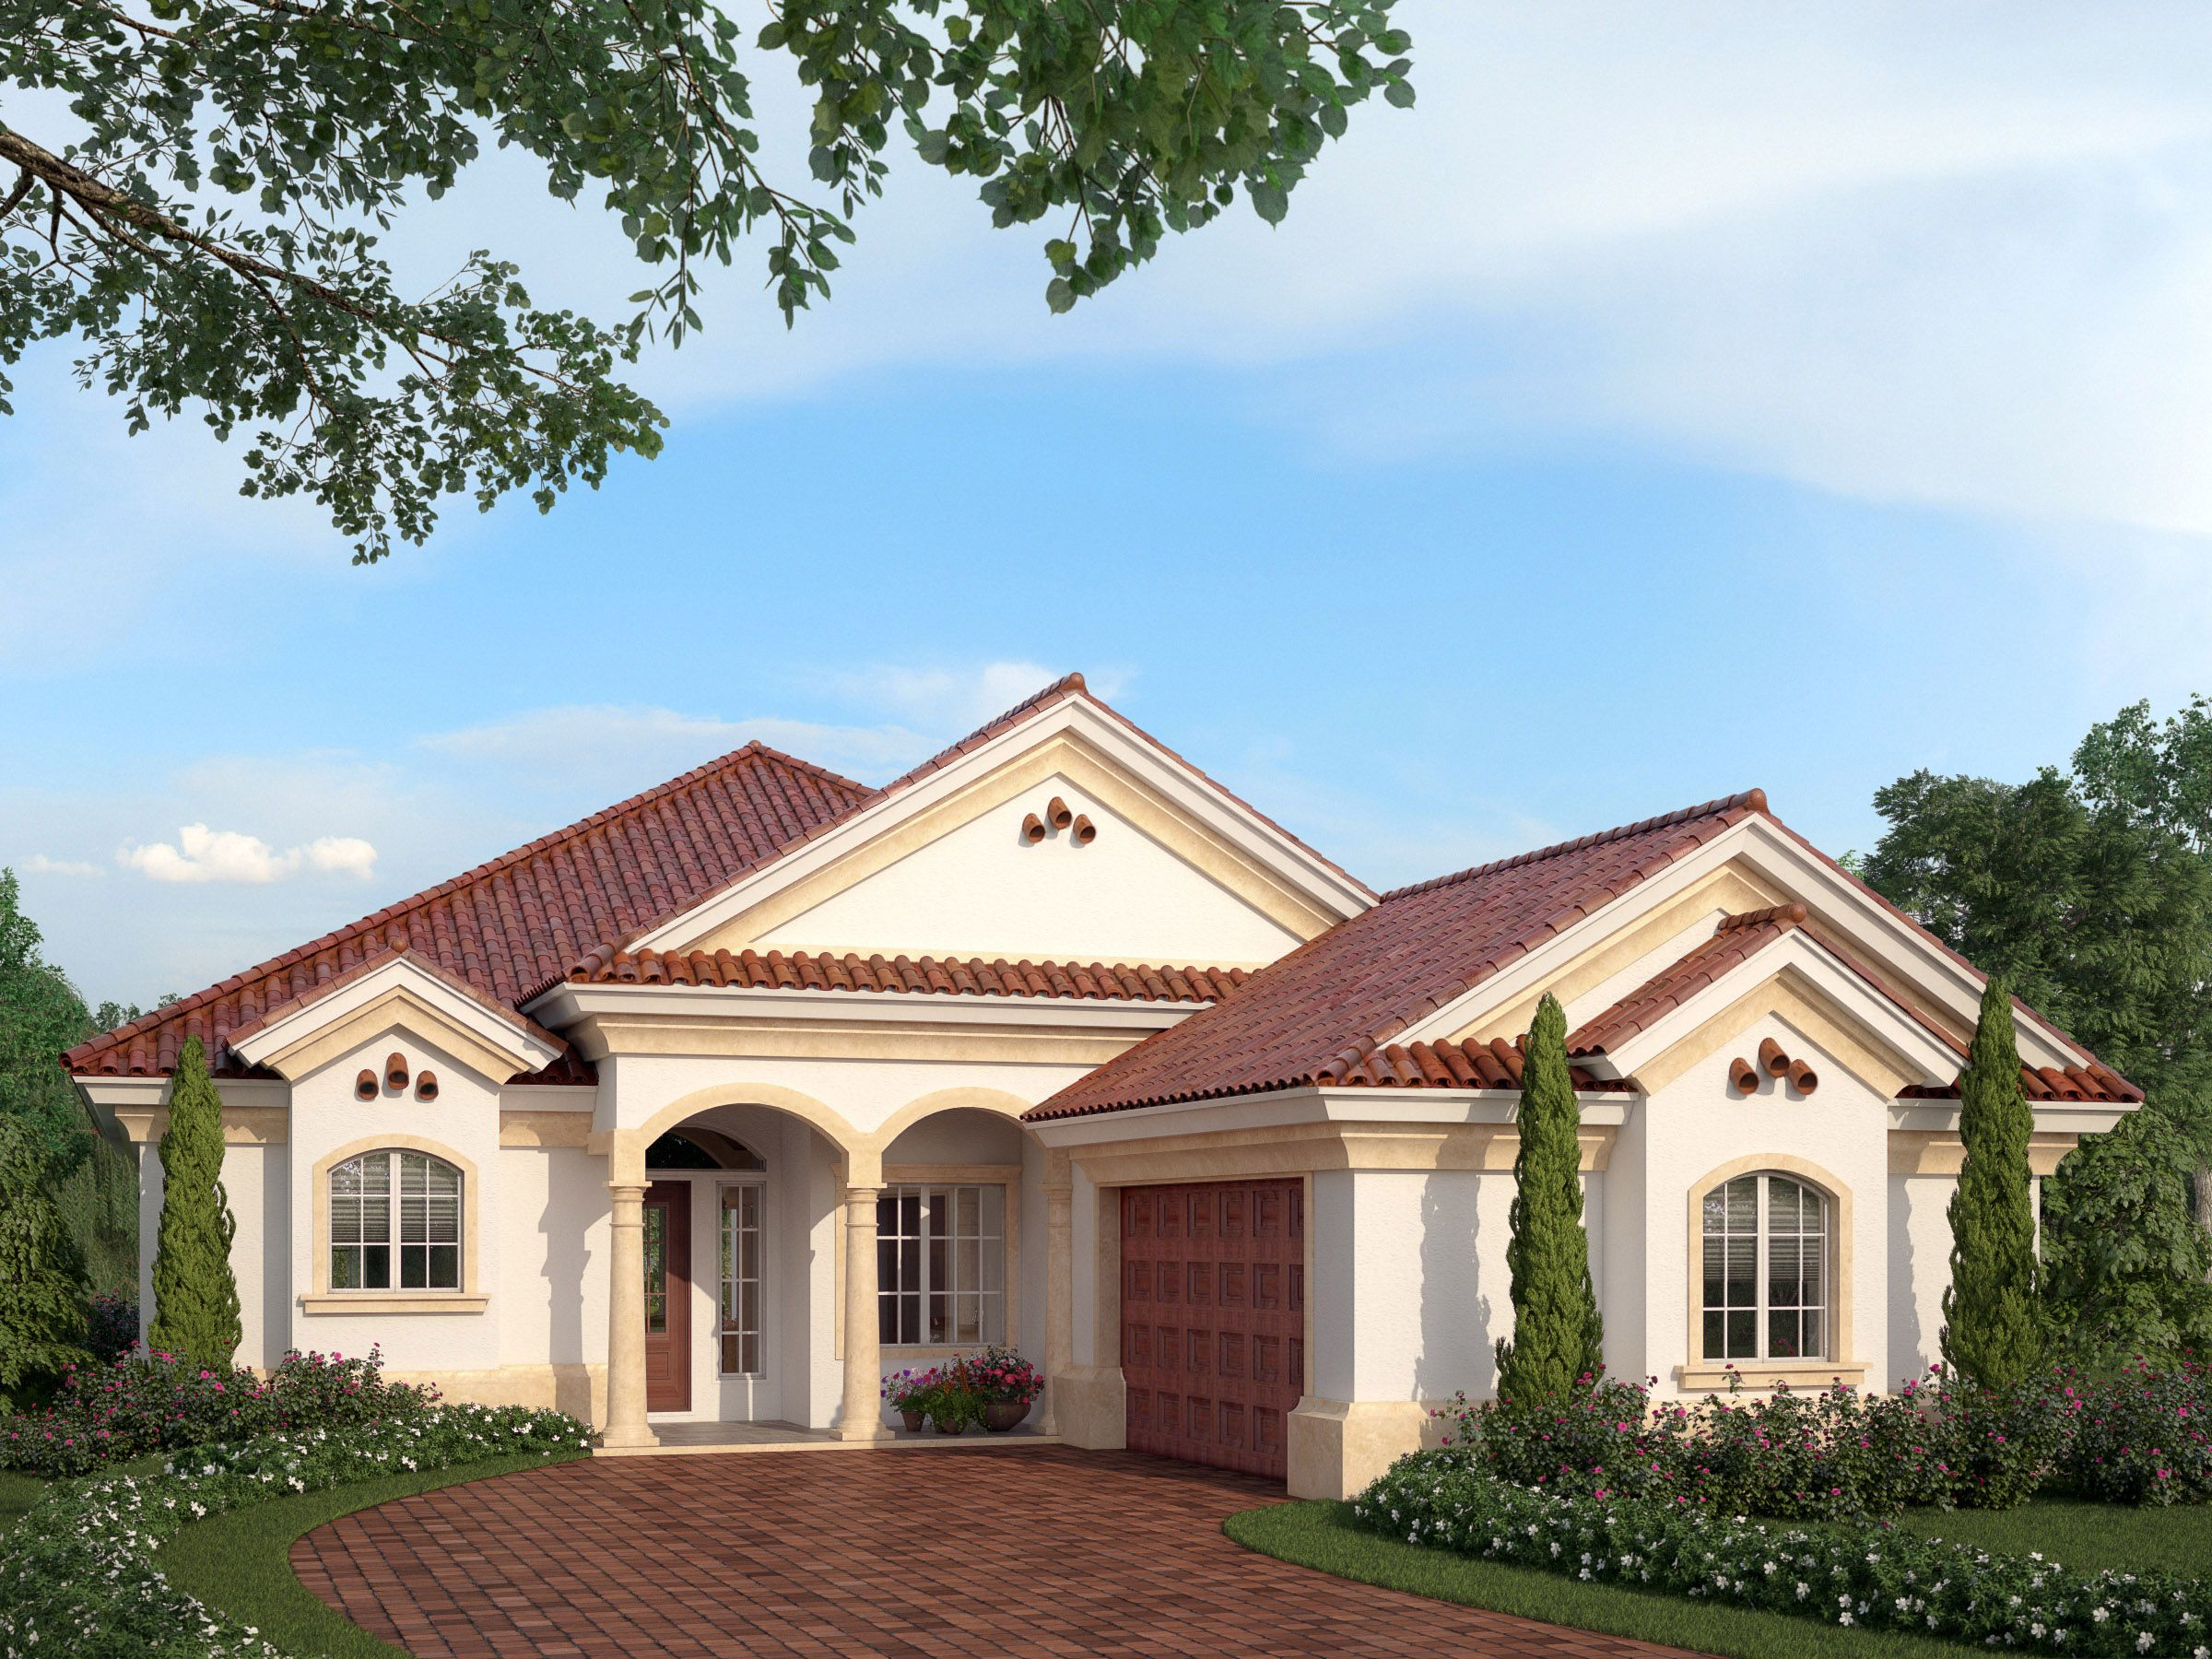 e70d00f0a3f32560d62895087aa23231 Top Result 52 Best Of Craftsman Style Home Plans Photography 2017 Hdj5